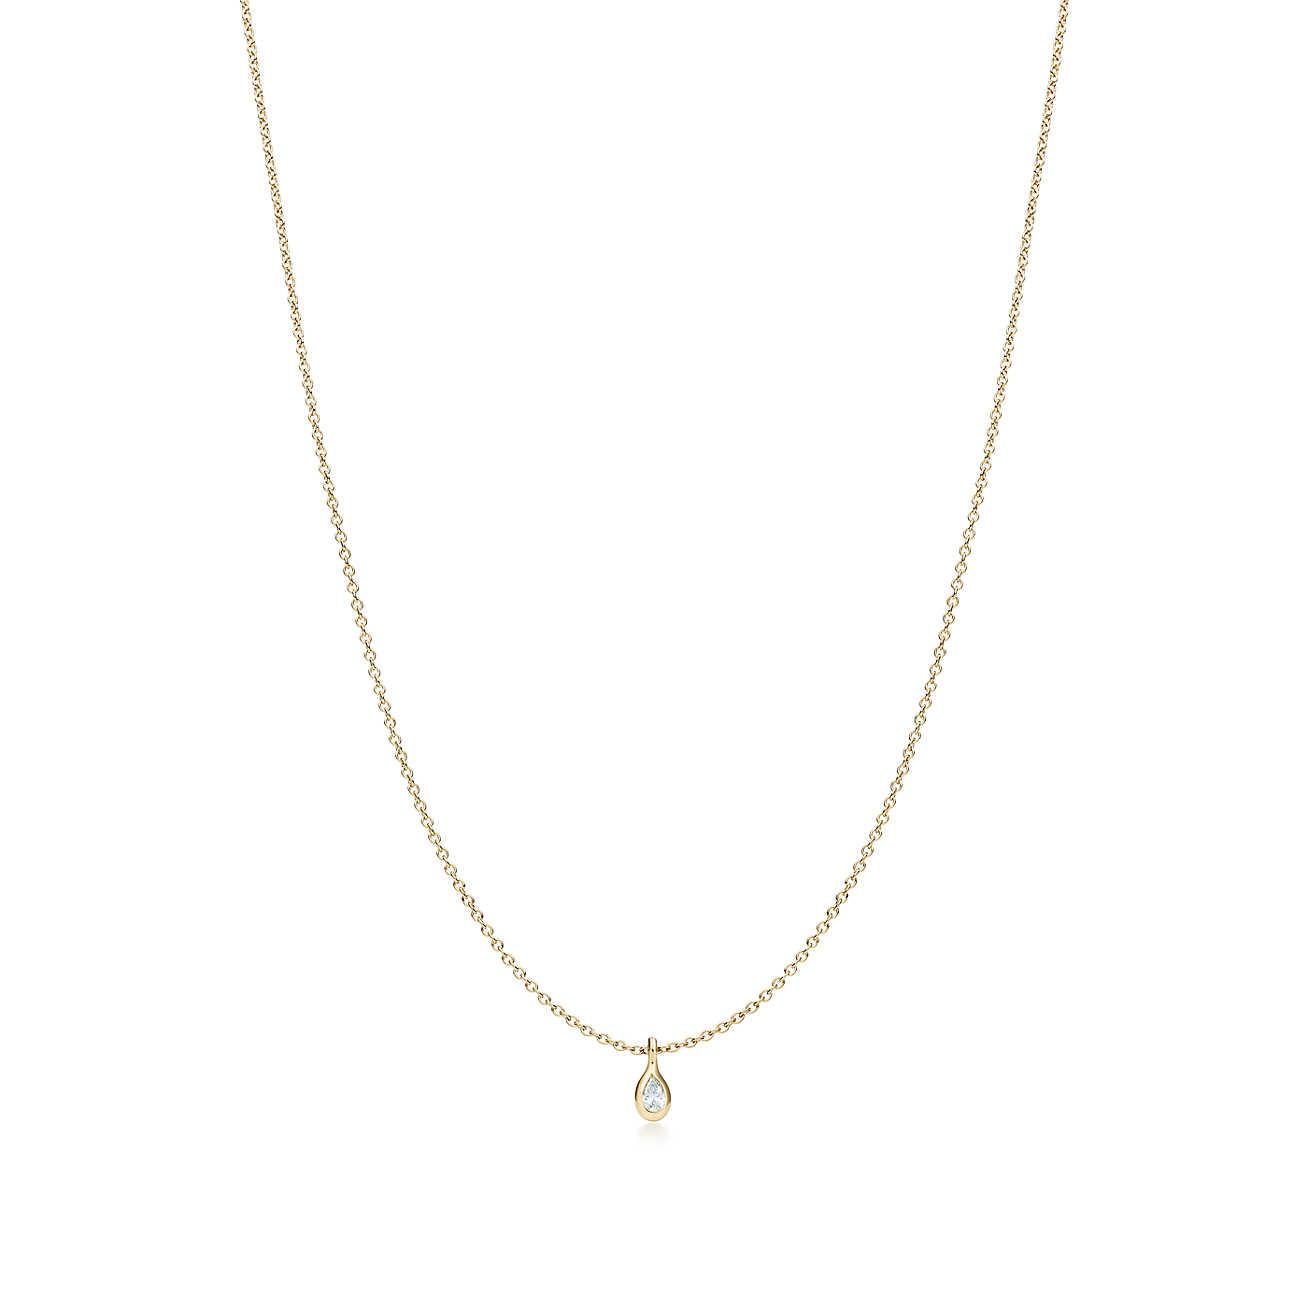 Elsa Peretti Diamonds by the Yard pendant in 18k rose gold - Size.07 Tiffany & Co. 1ZYqnHmou0